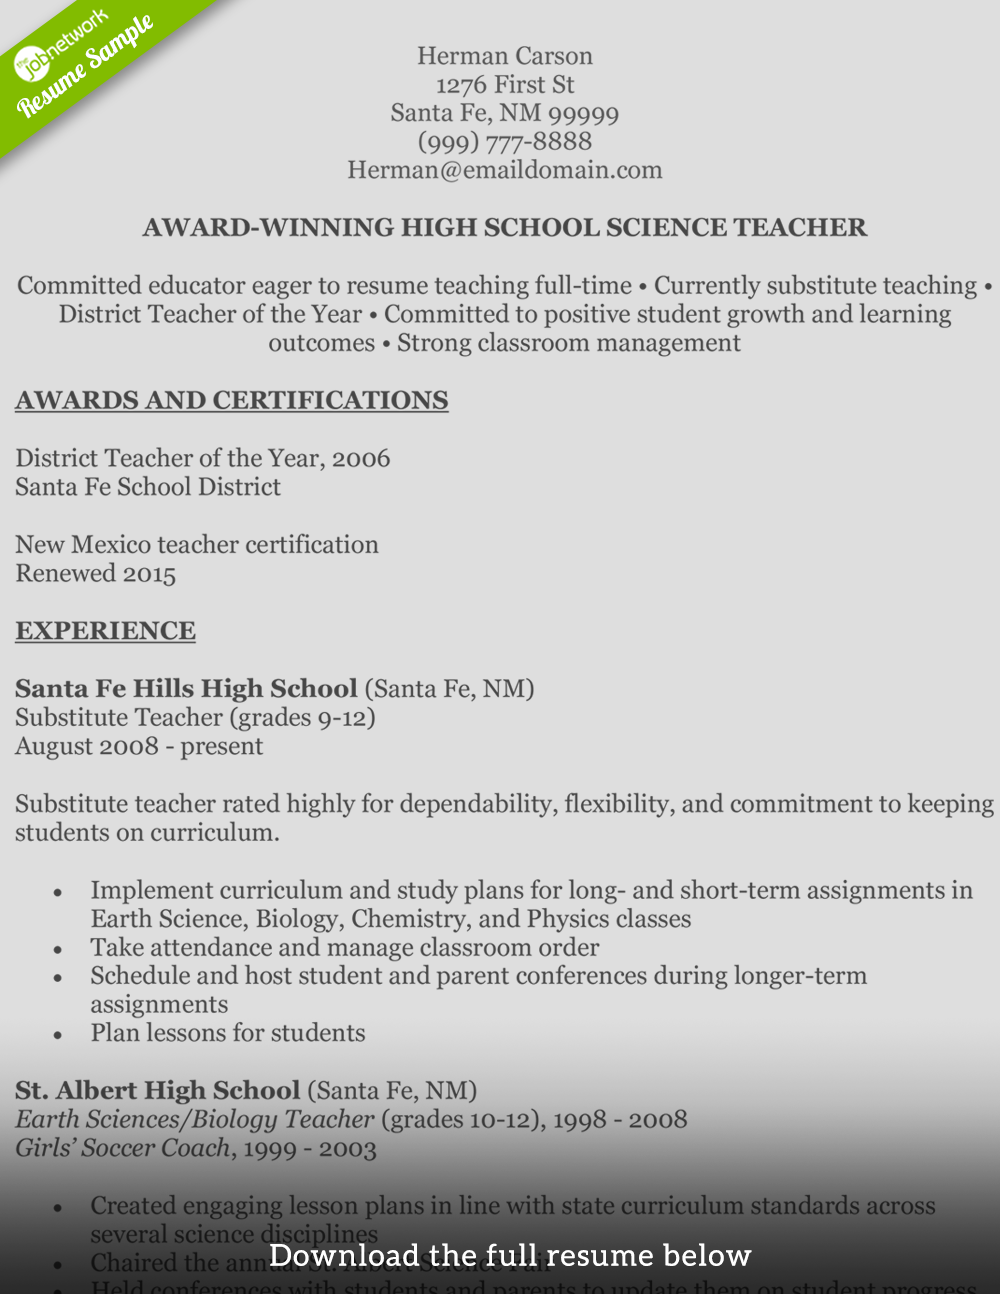 teaching resume herman carson - Substitute Teaching Resume